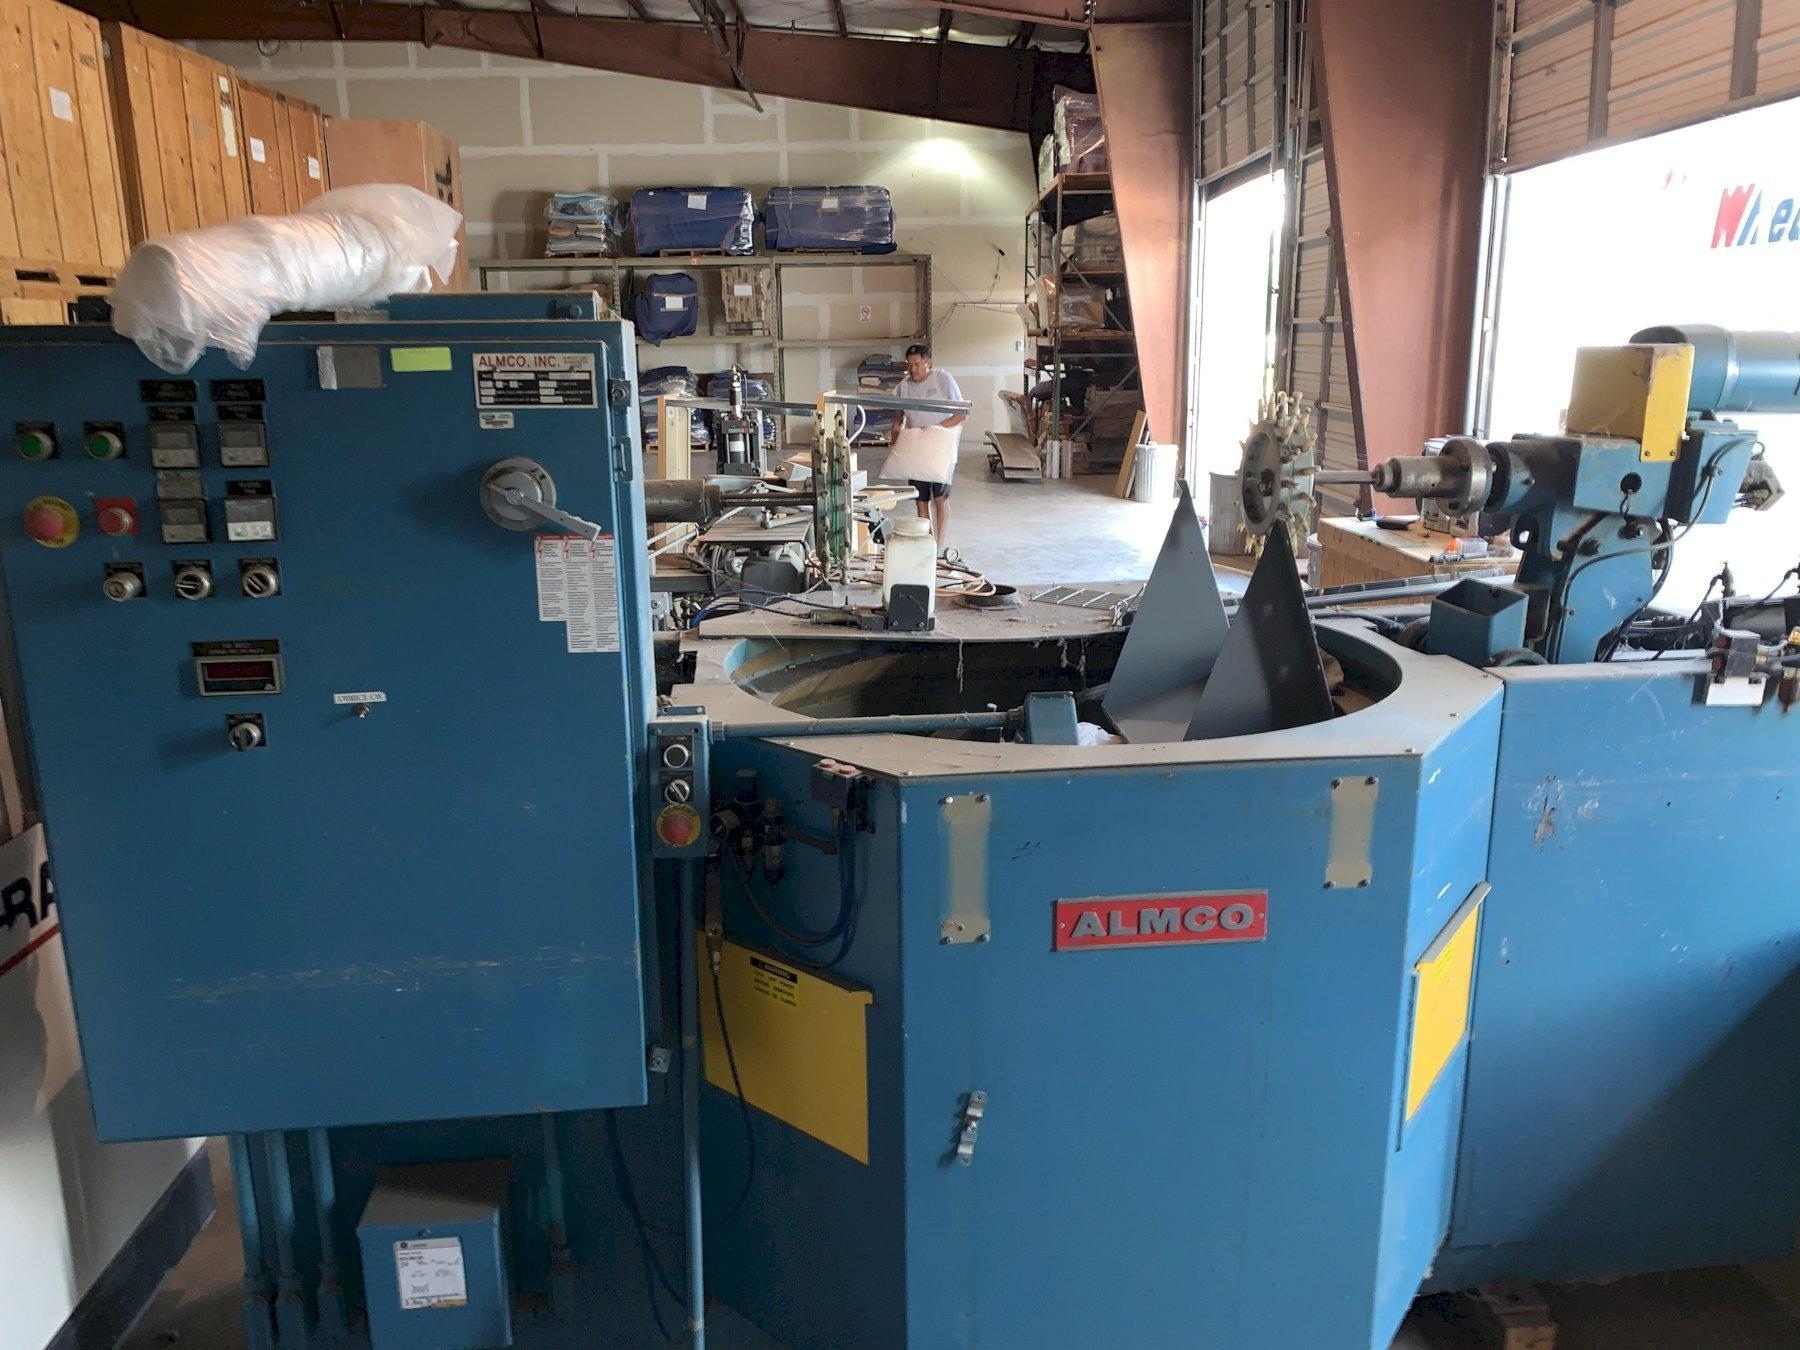 ALMCO 2SF-48A SPINDLE DEBURRING MACHINE. STOCK # 0953920